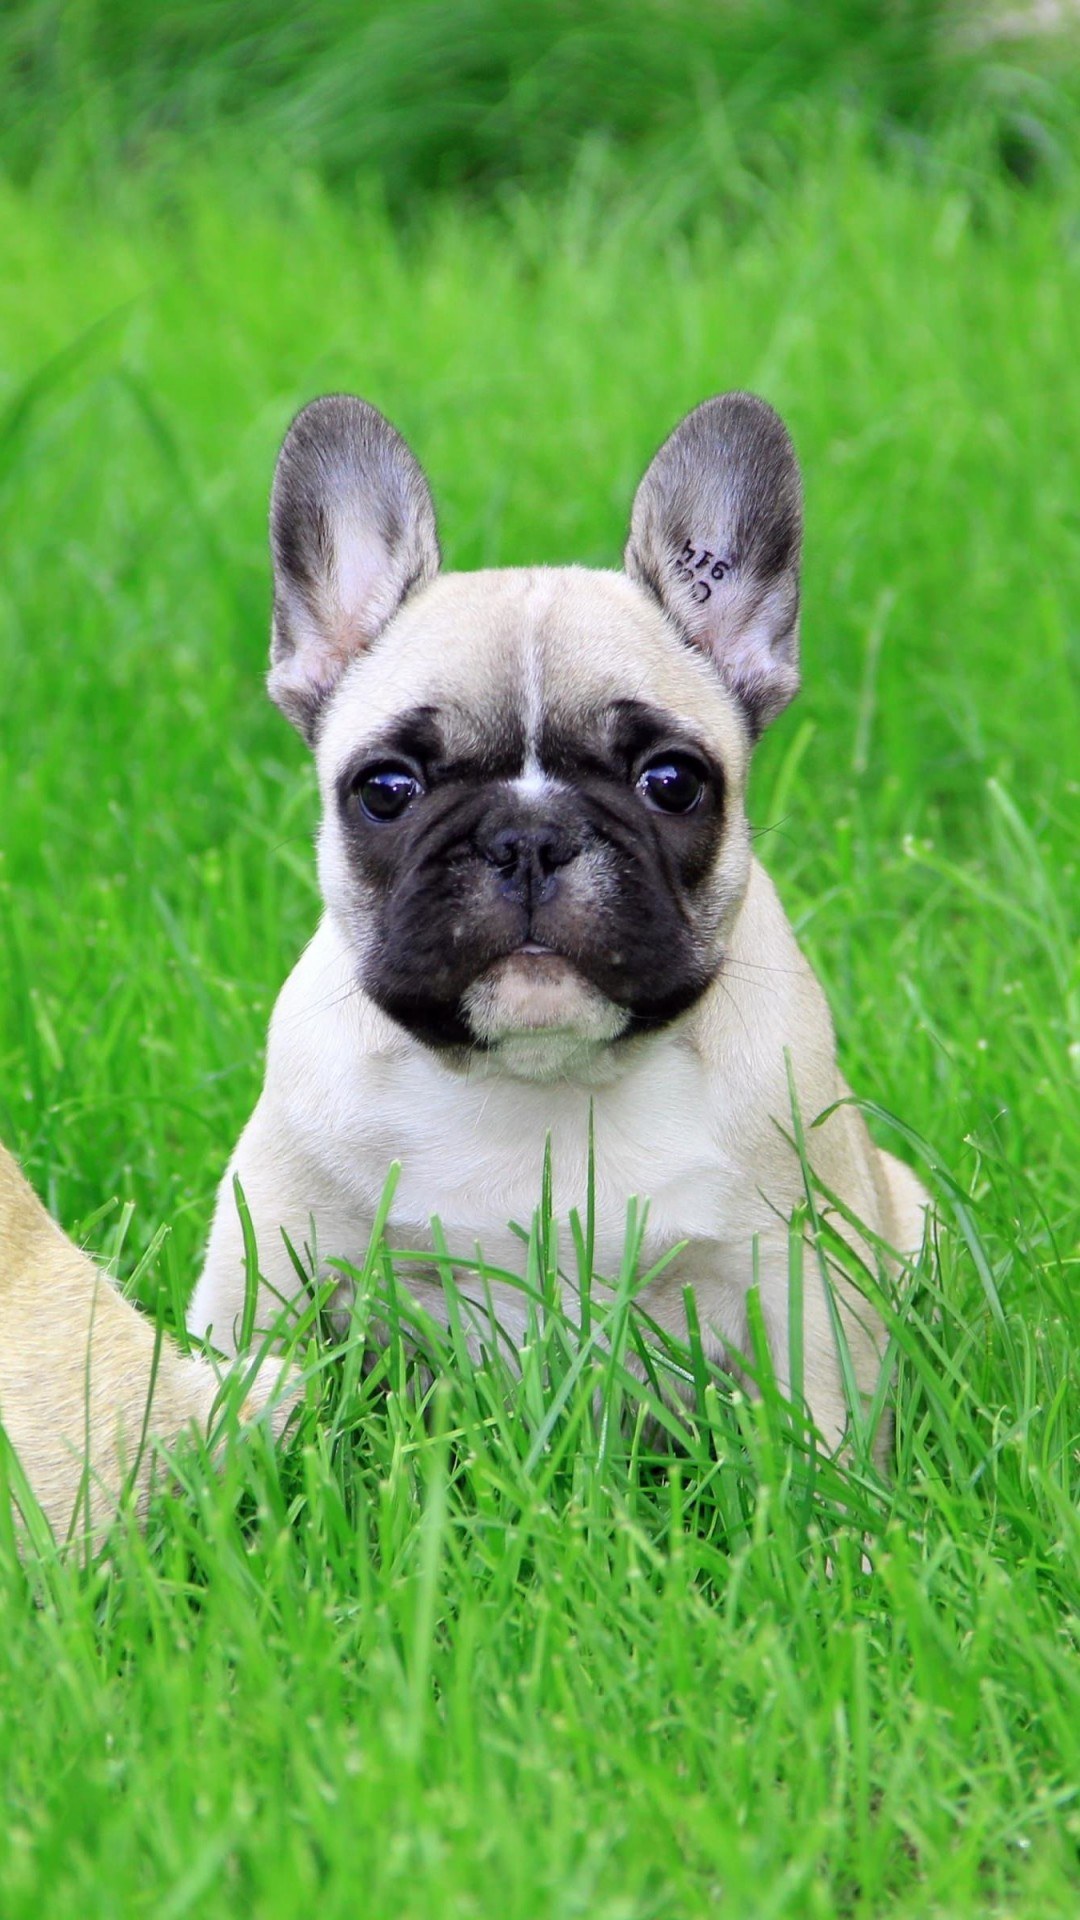 French Bulldog Puppy Wallpaper for LG G2